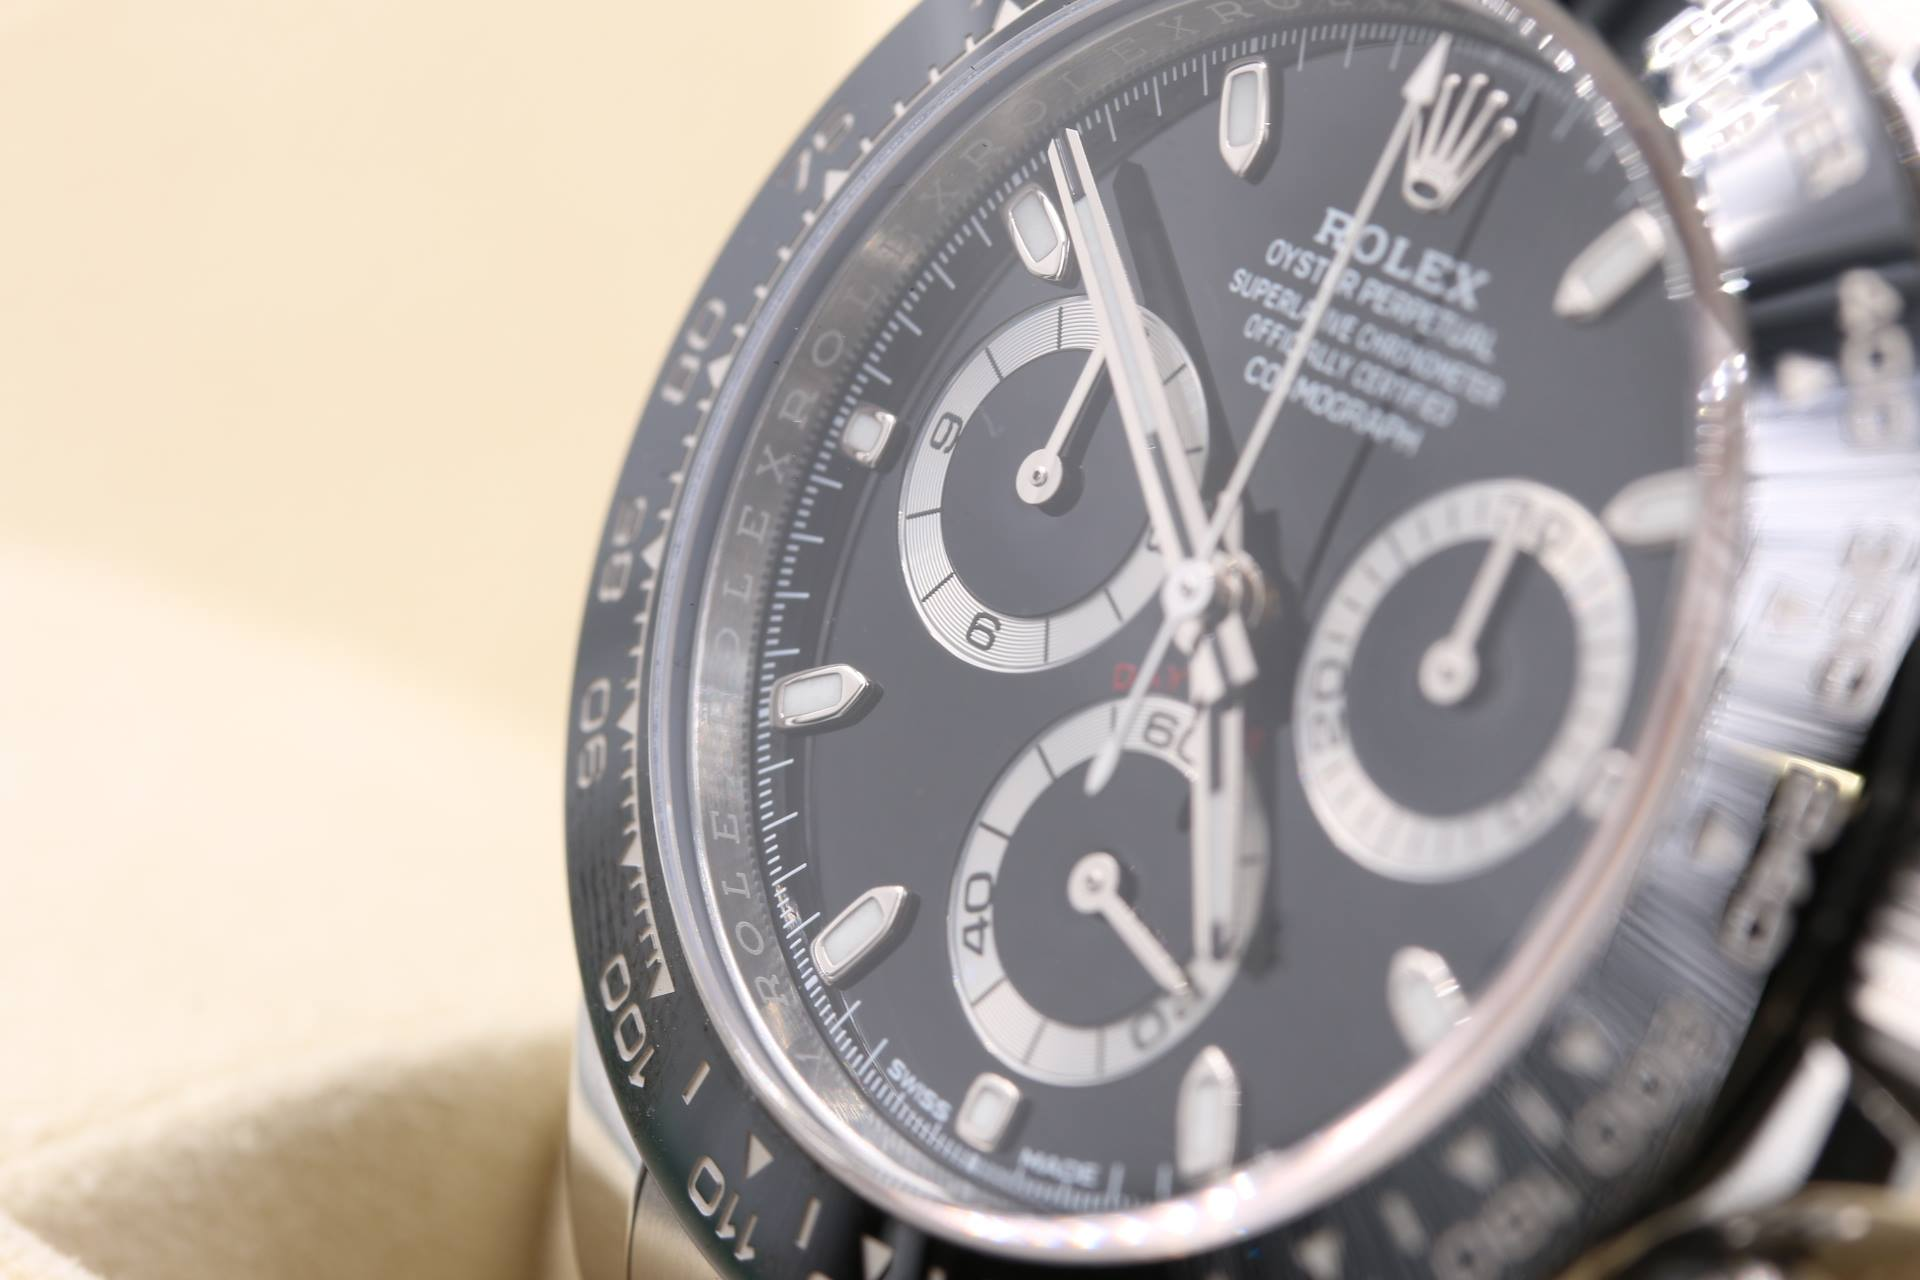 watch broker rolex daytona luxury watch